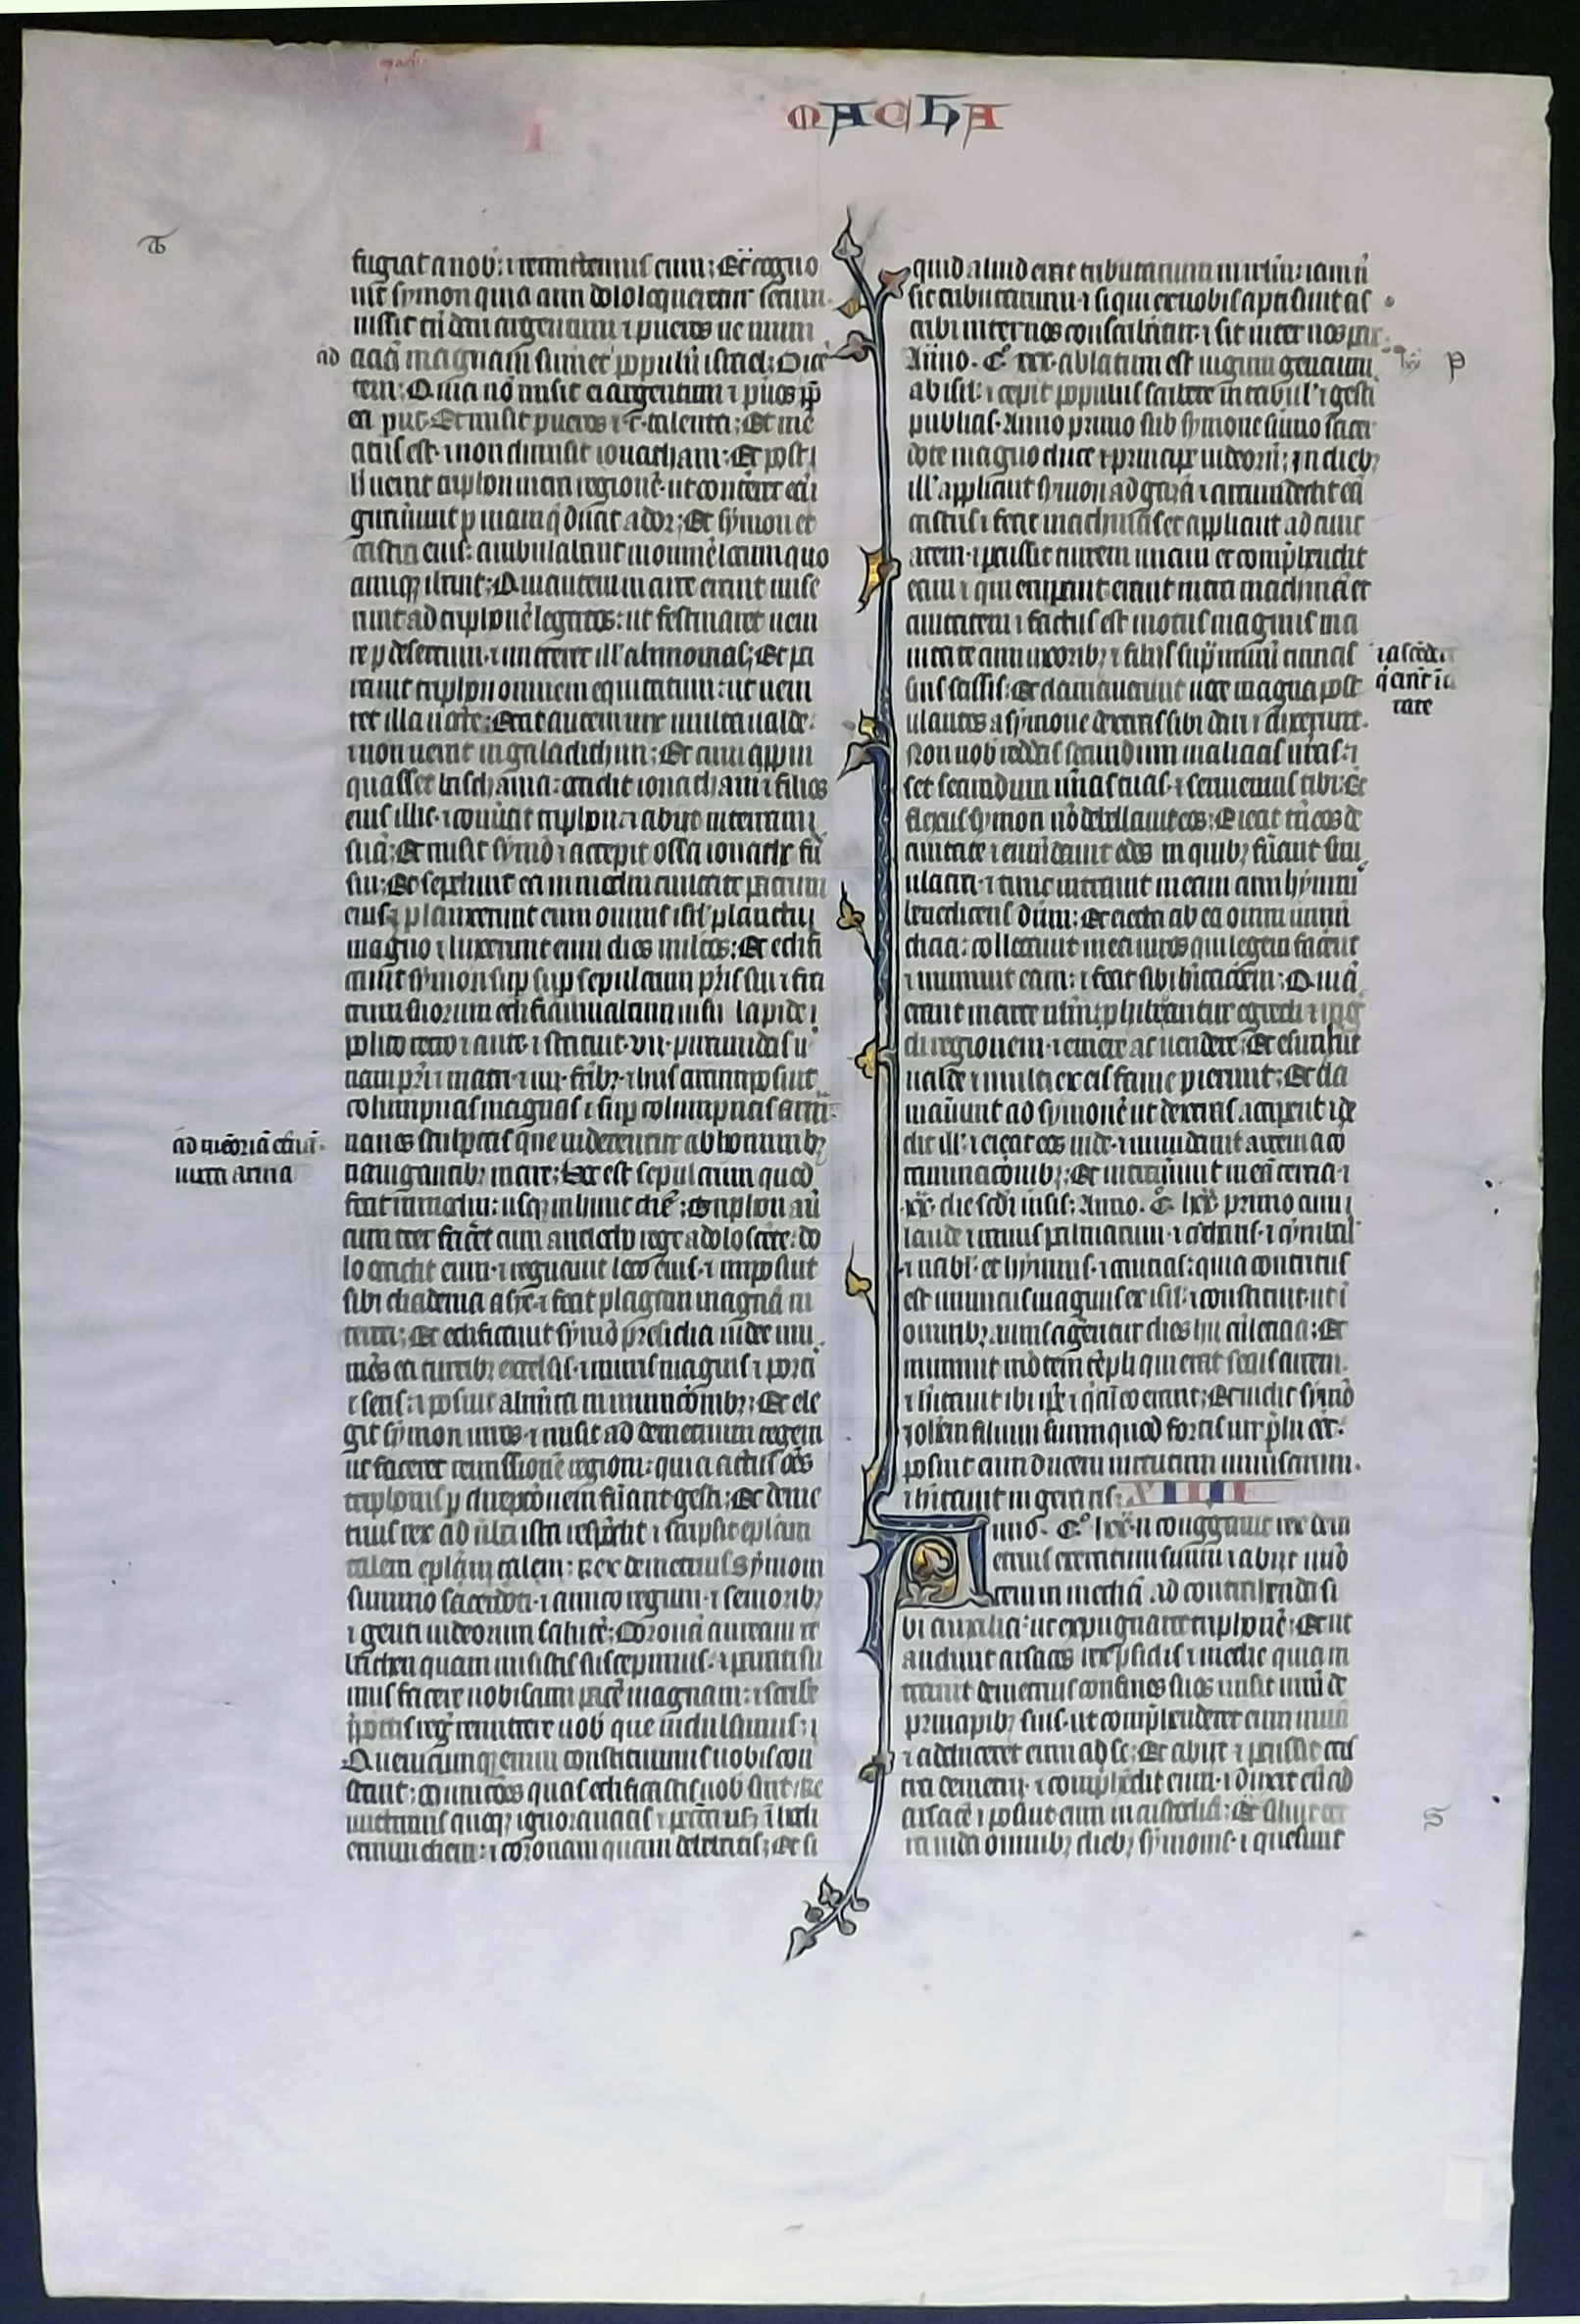 Verso of Rogue Leaf from Ege Manuscript 14 at Kent State University. Reproduced by permission